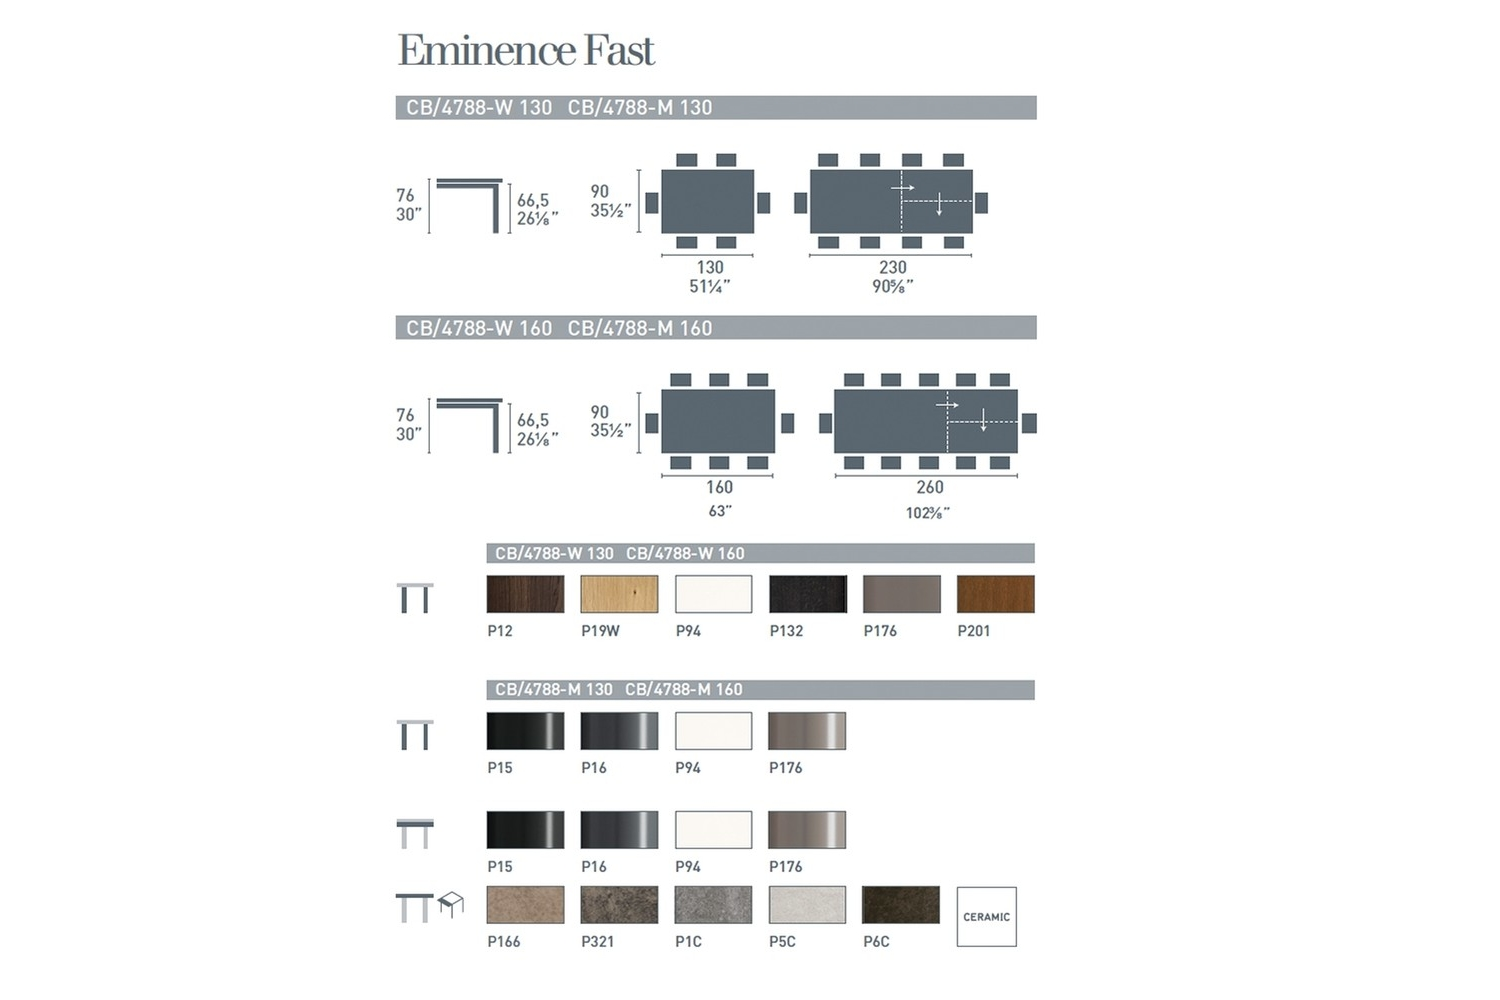 EMINENCE FAST Table Connubia Schematics 2018 EMINENCE-FAST_Table_Connubia_Schematics_2018.jpg